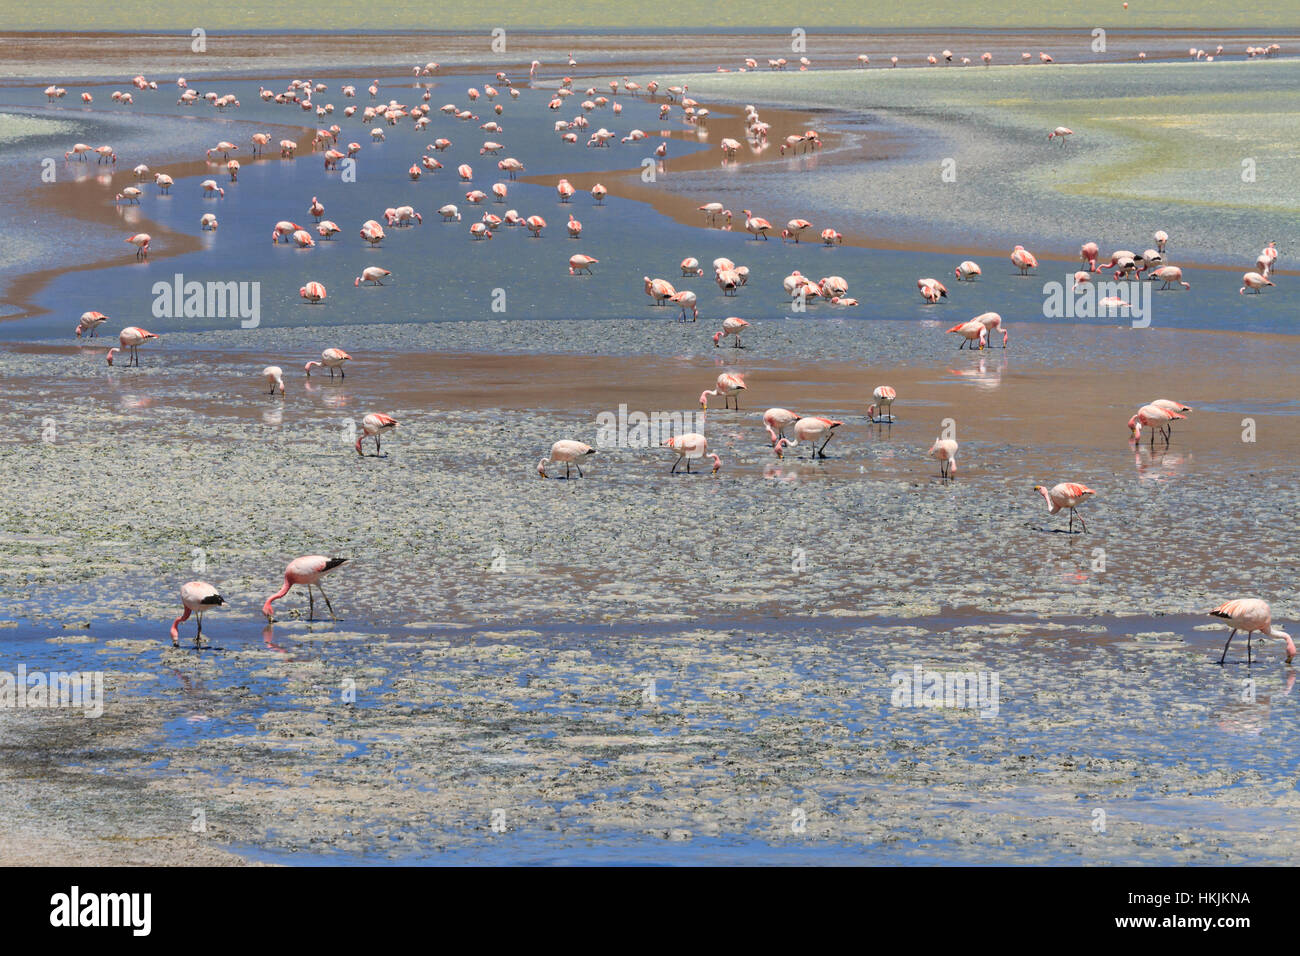 Flamands roses à Laguna Hedionda, Altiplano, Bolivie Photo Stock